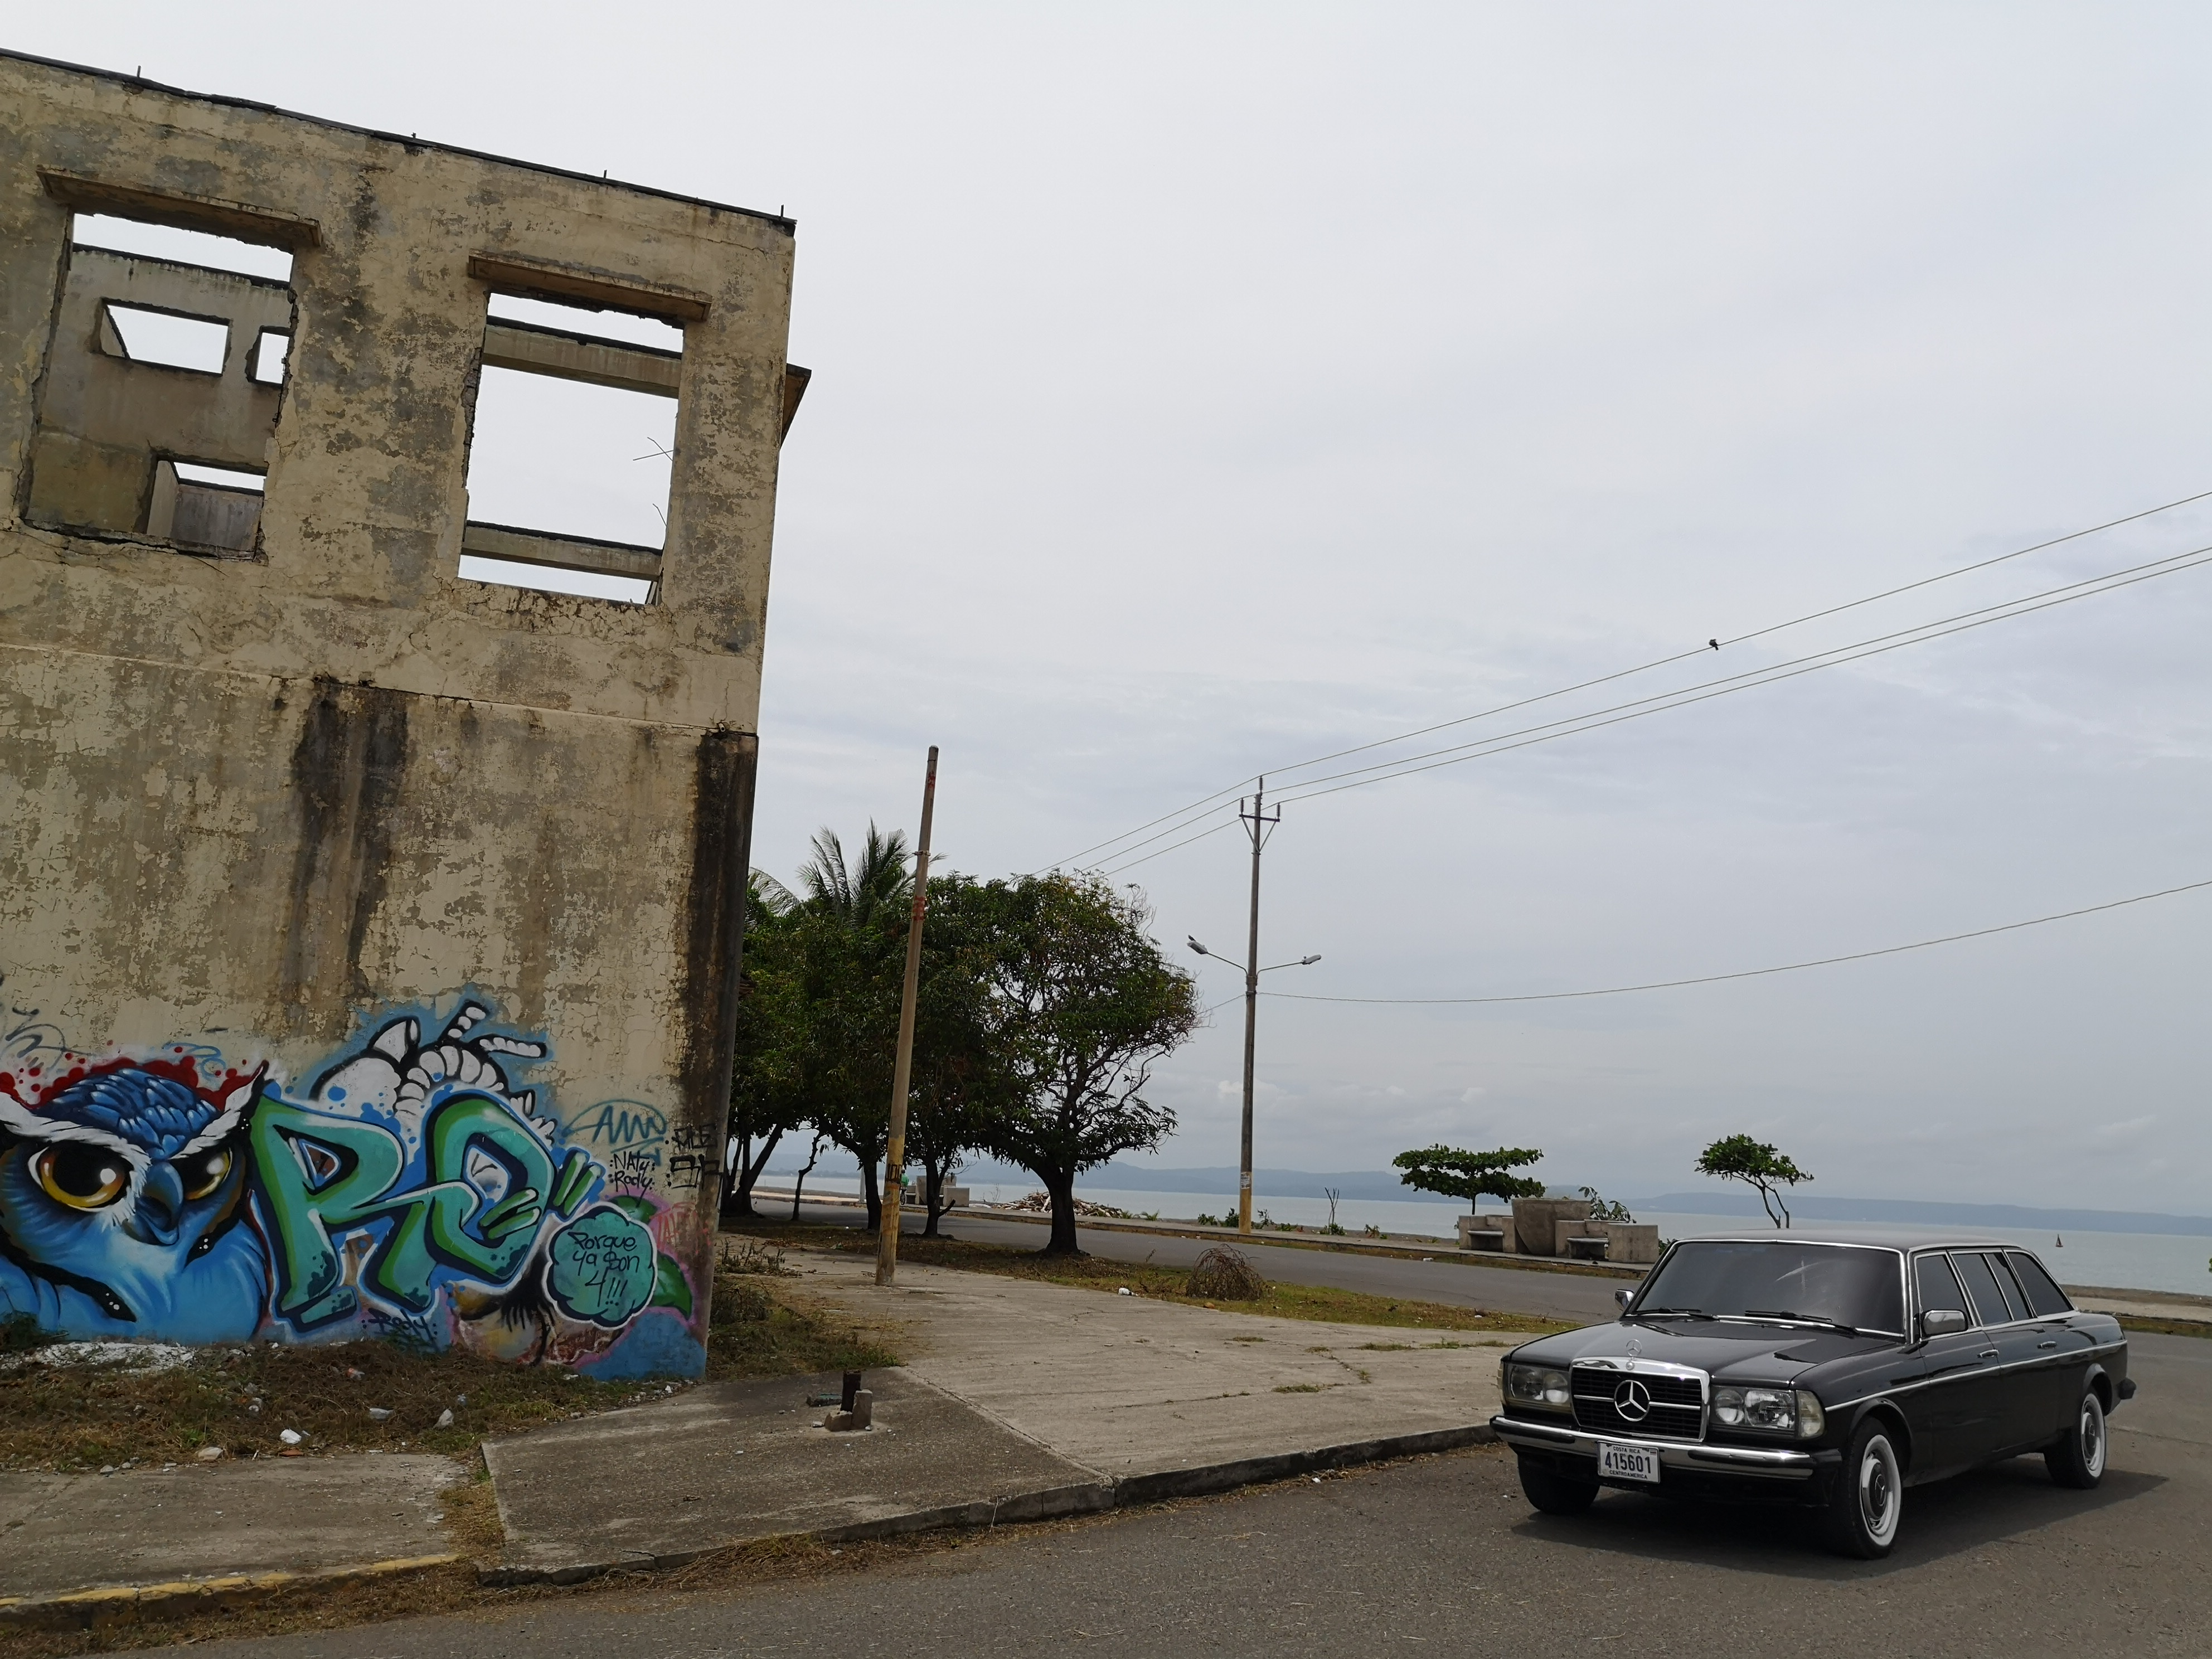 838COSTA_RICA_GRAFFITI._M.jpg